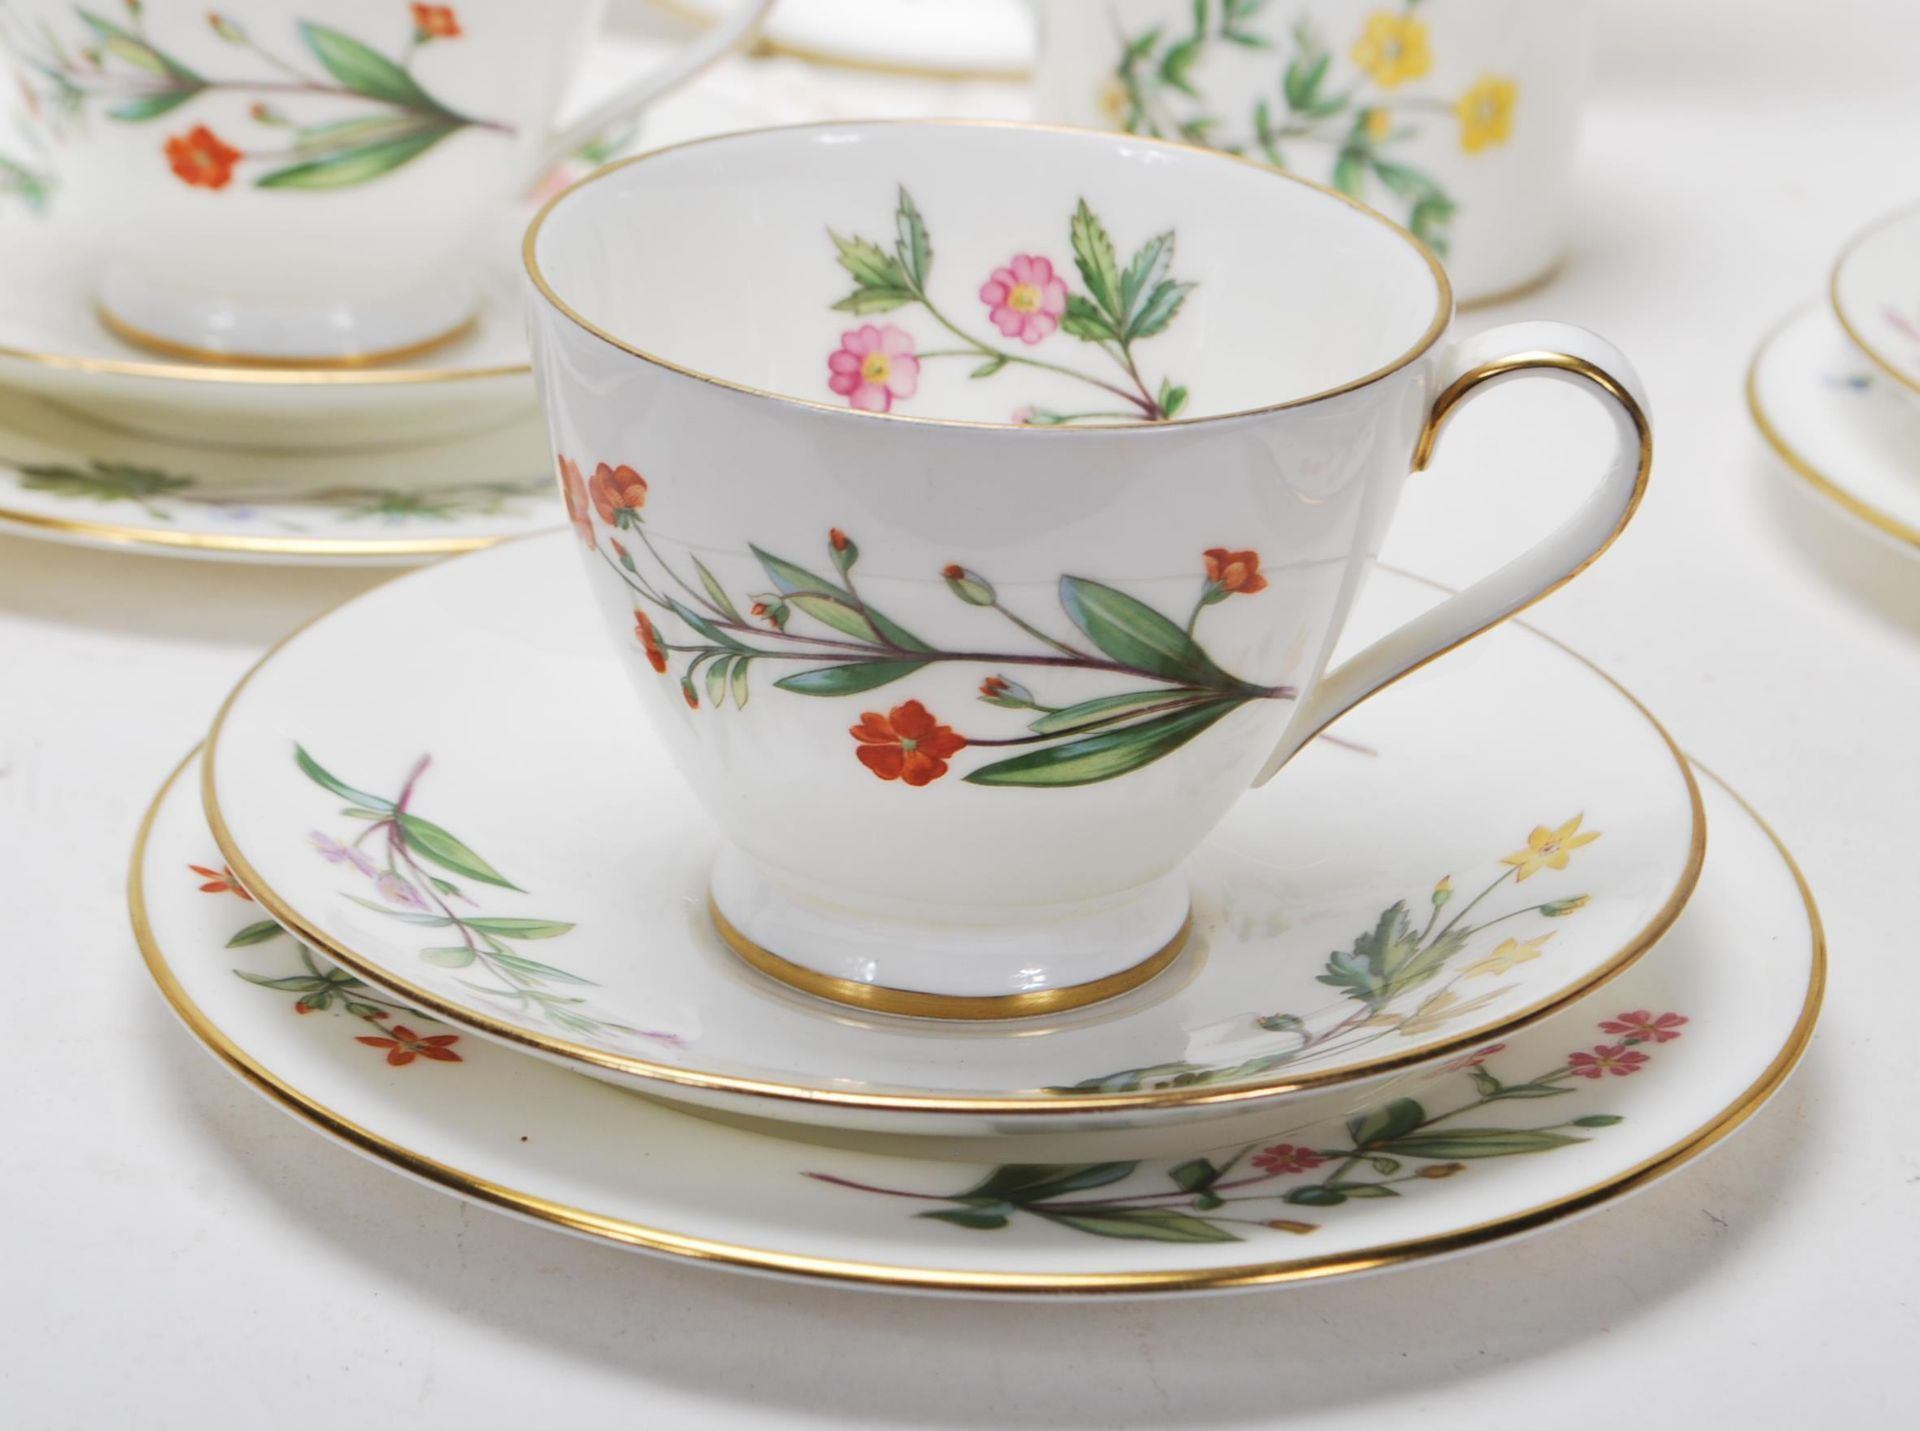 MINTON MEADOW PATTERN BONE CHINA TEA SERVICE - Image 3 of 12